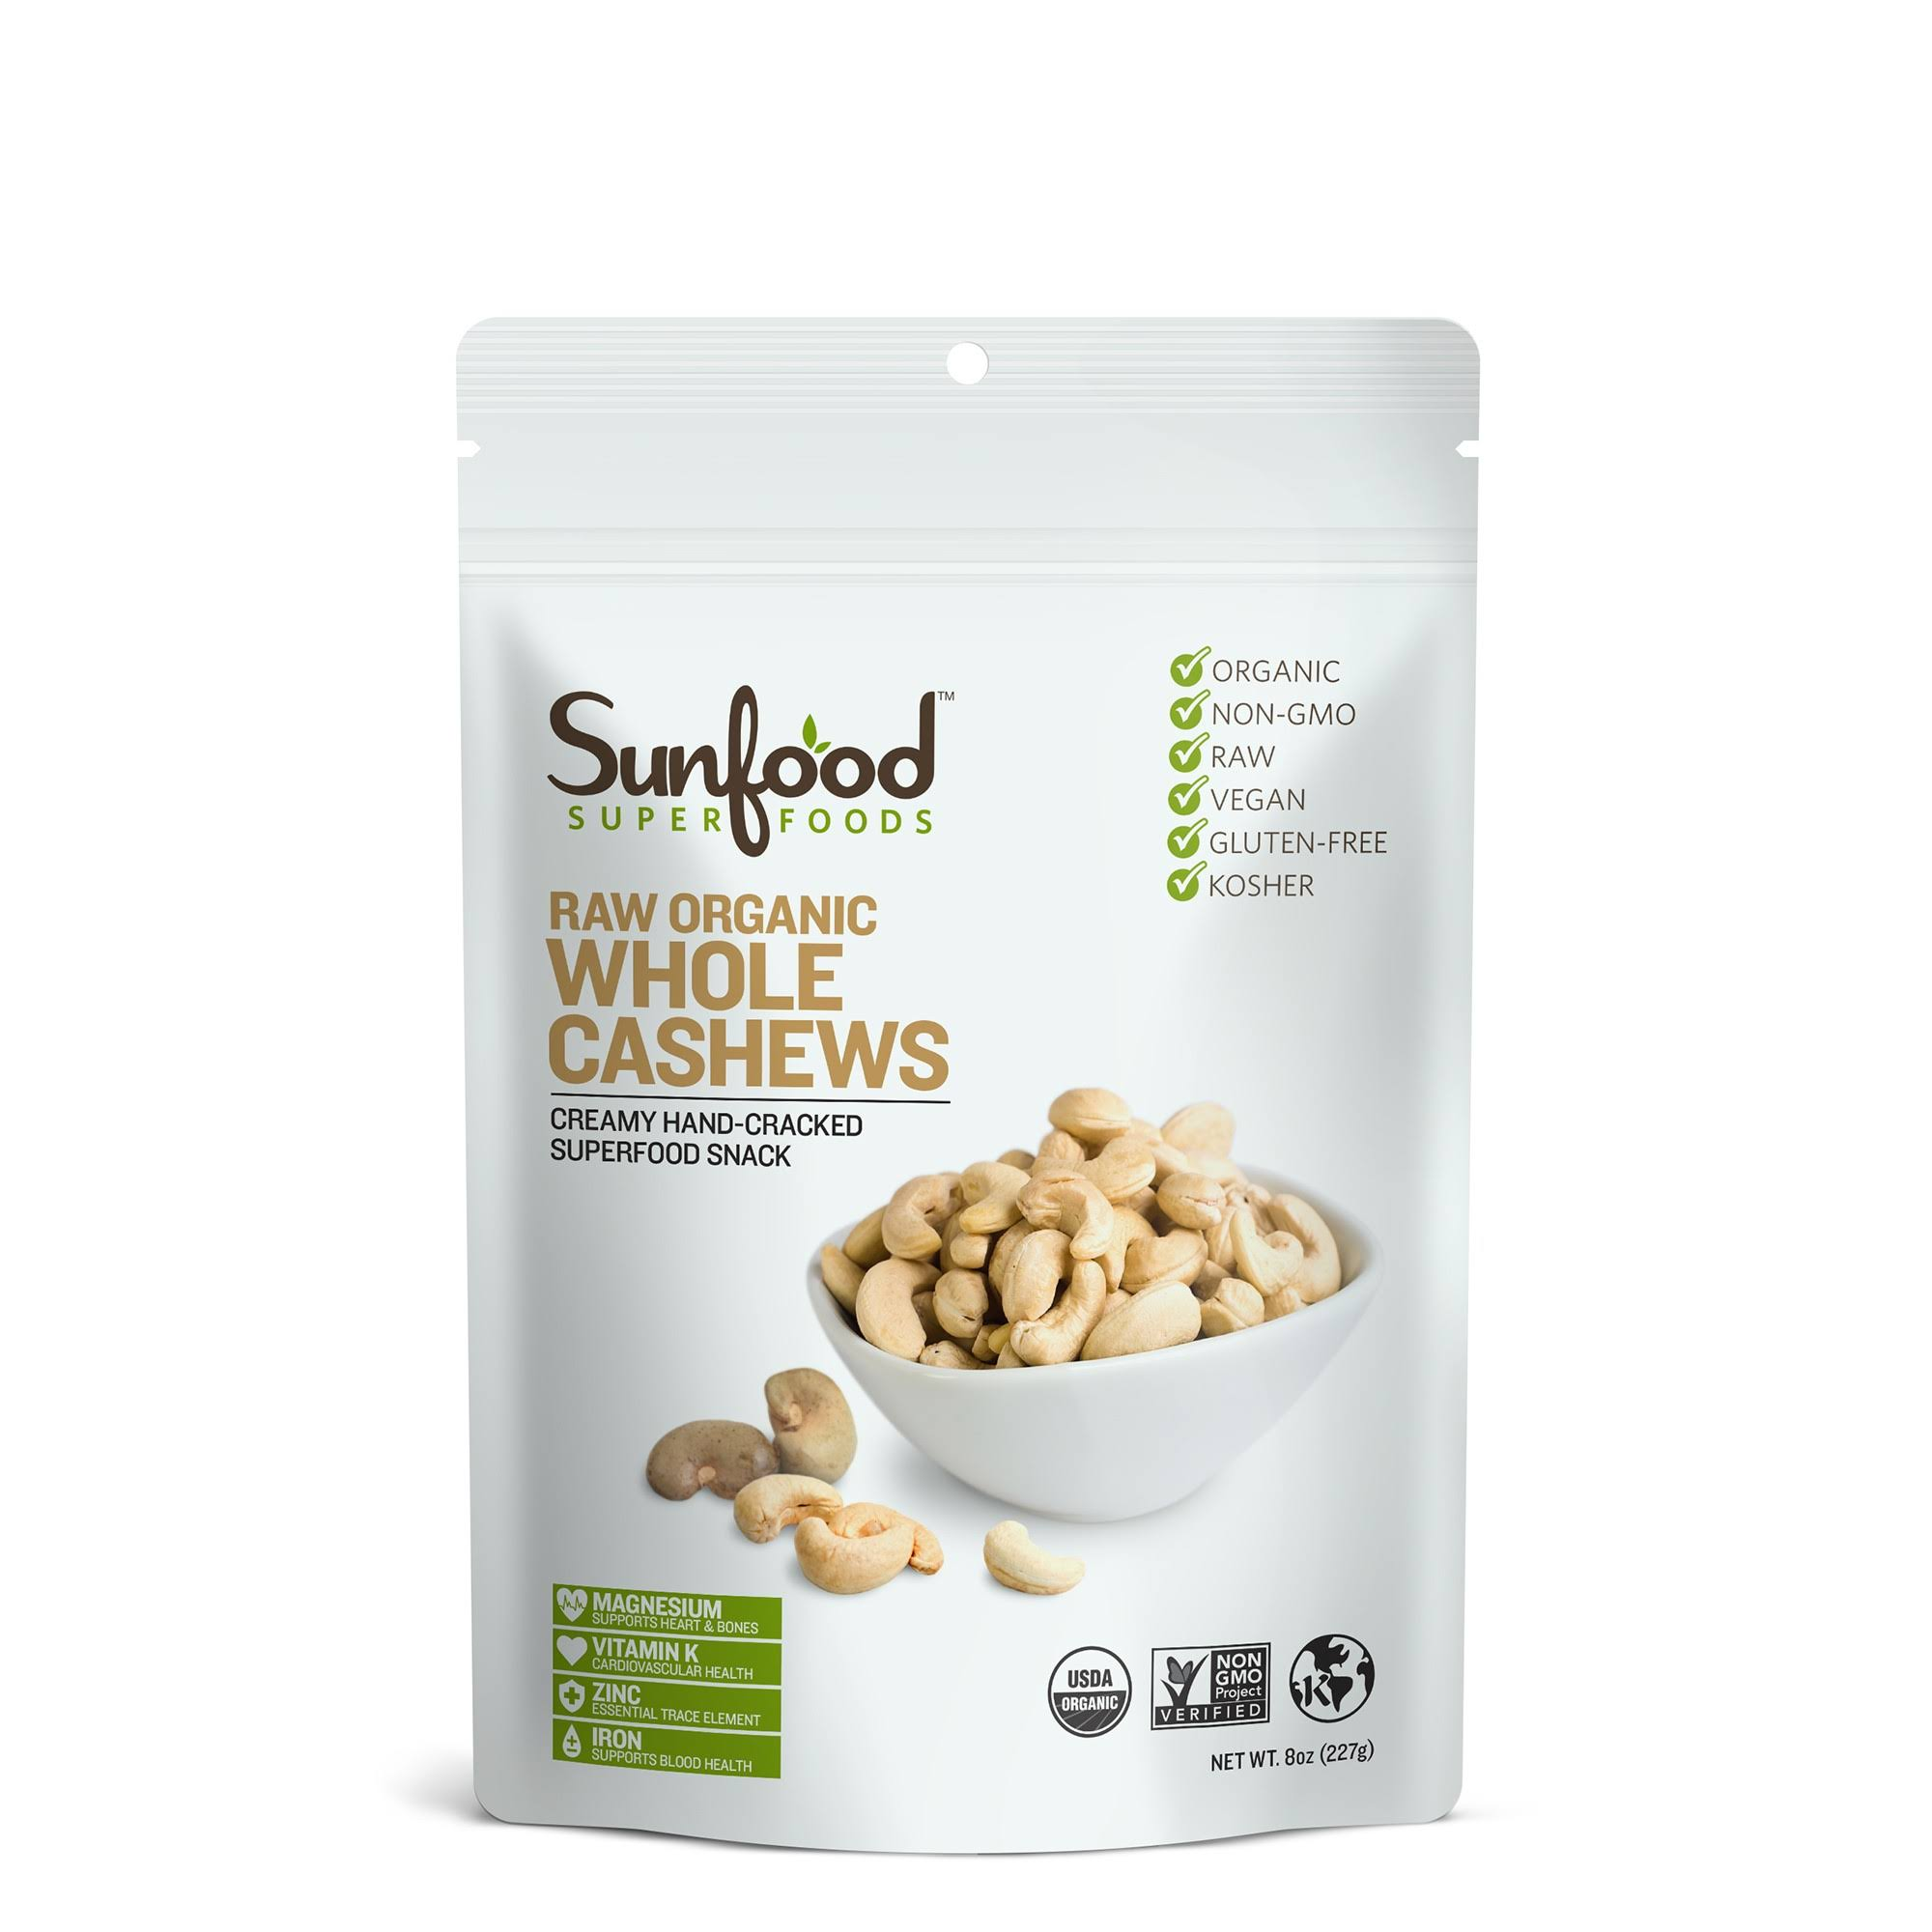 Sunfood Raw Organic Whole Cashews 8 oz